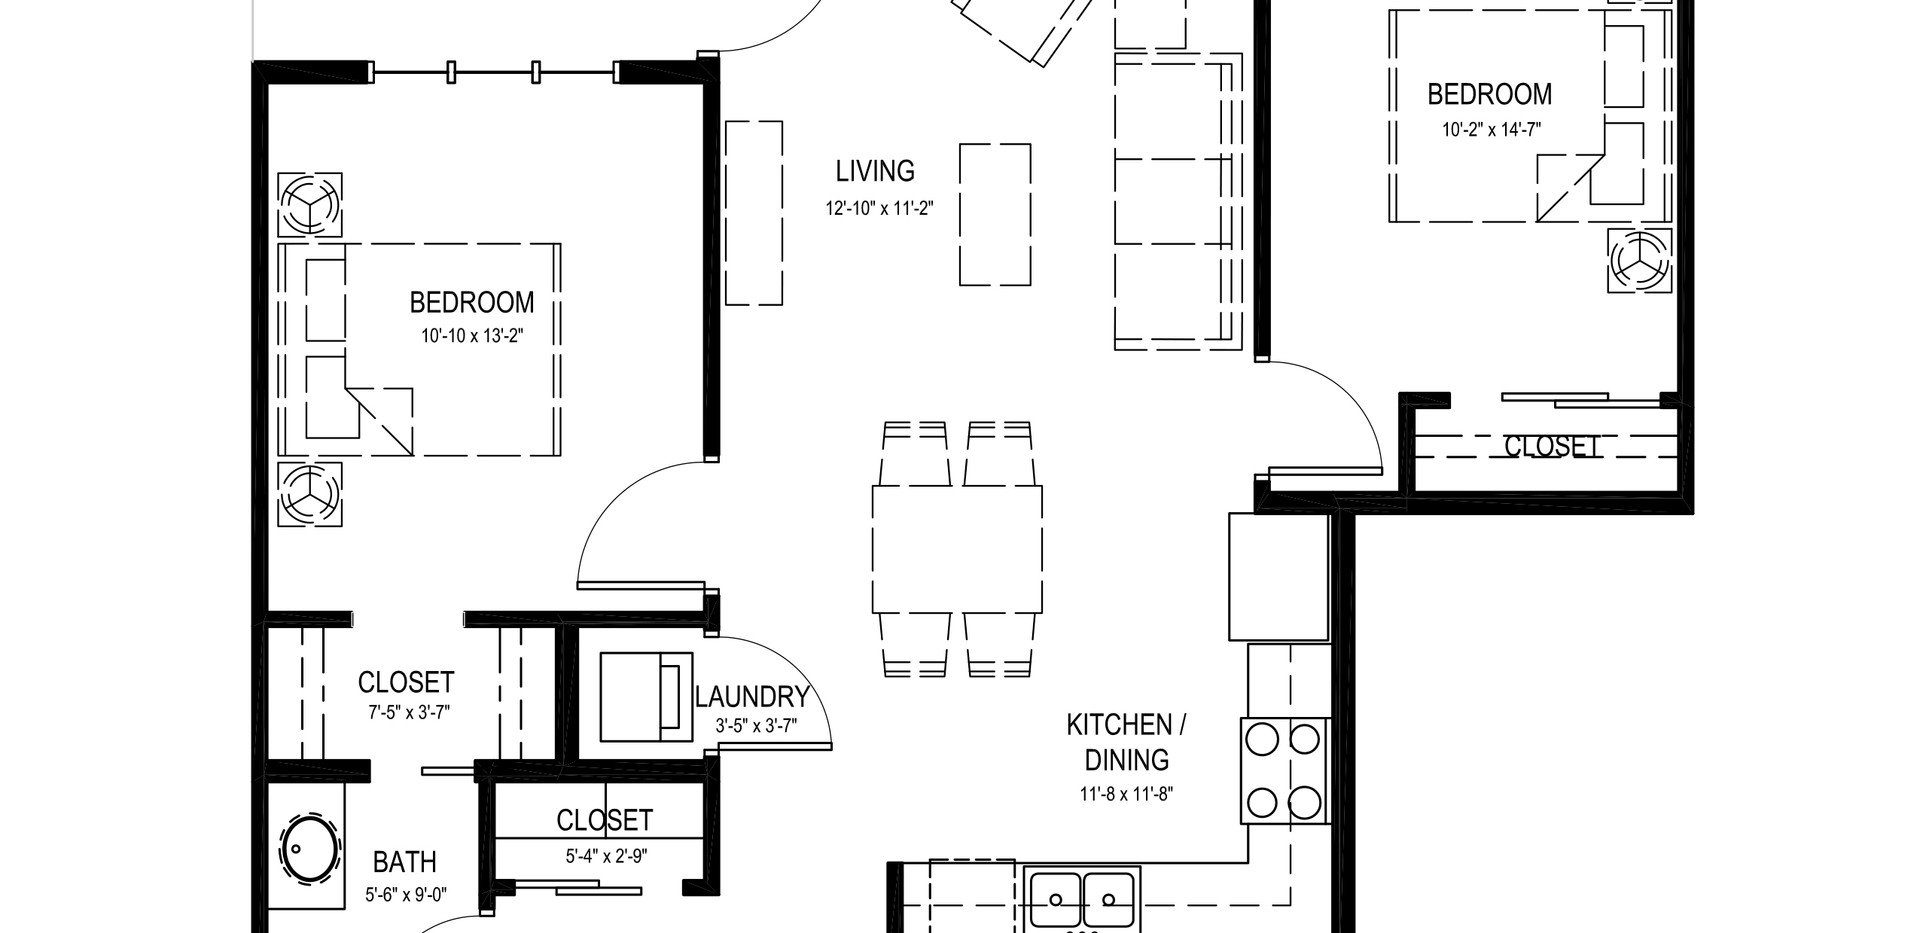 Mackenzie B Suite Layouts-7.jpg